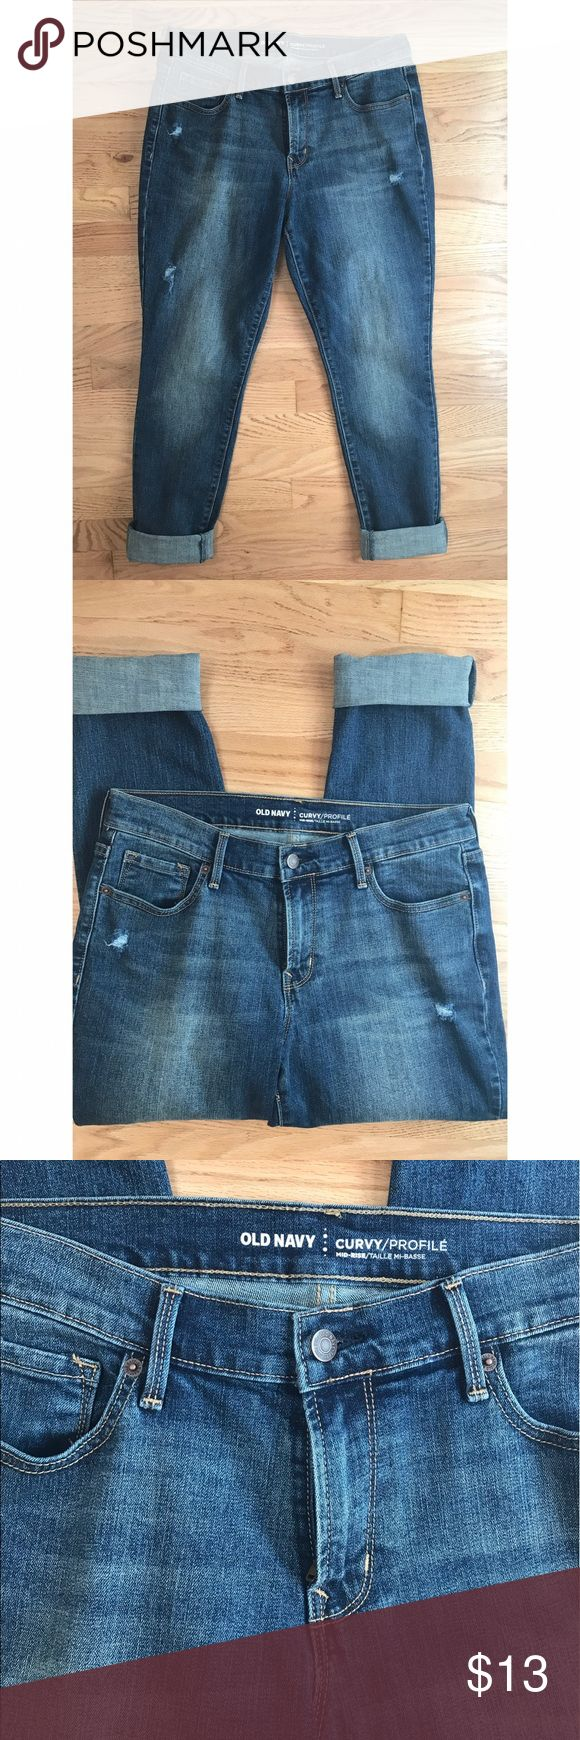 Old Navy Curvy Profile Jeans Old Nacy Curvy Profile Mid-Rise jeans. Can be cuffed up or let down. Size 8 short Old Navy Jeans